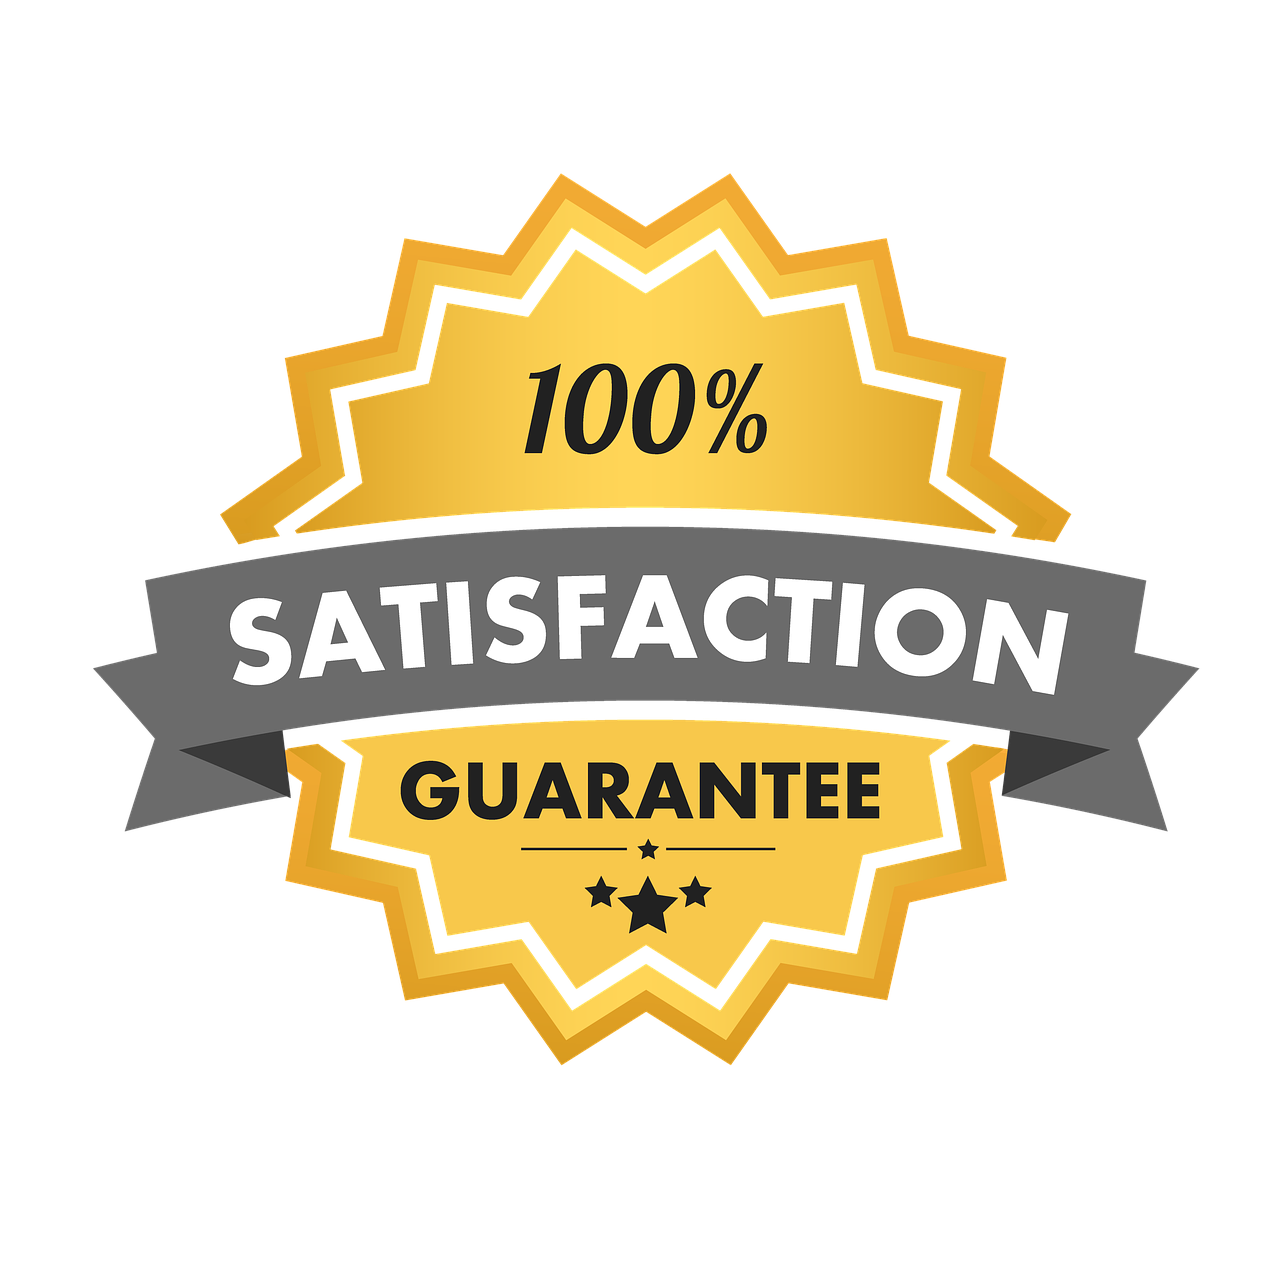 Satisfaction Guarantee 100 - Free image on Pixabay